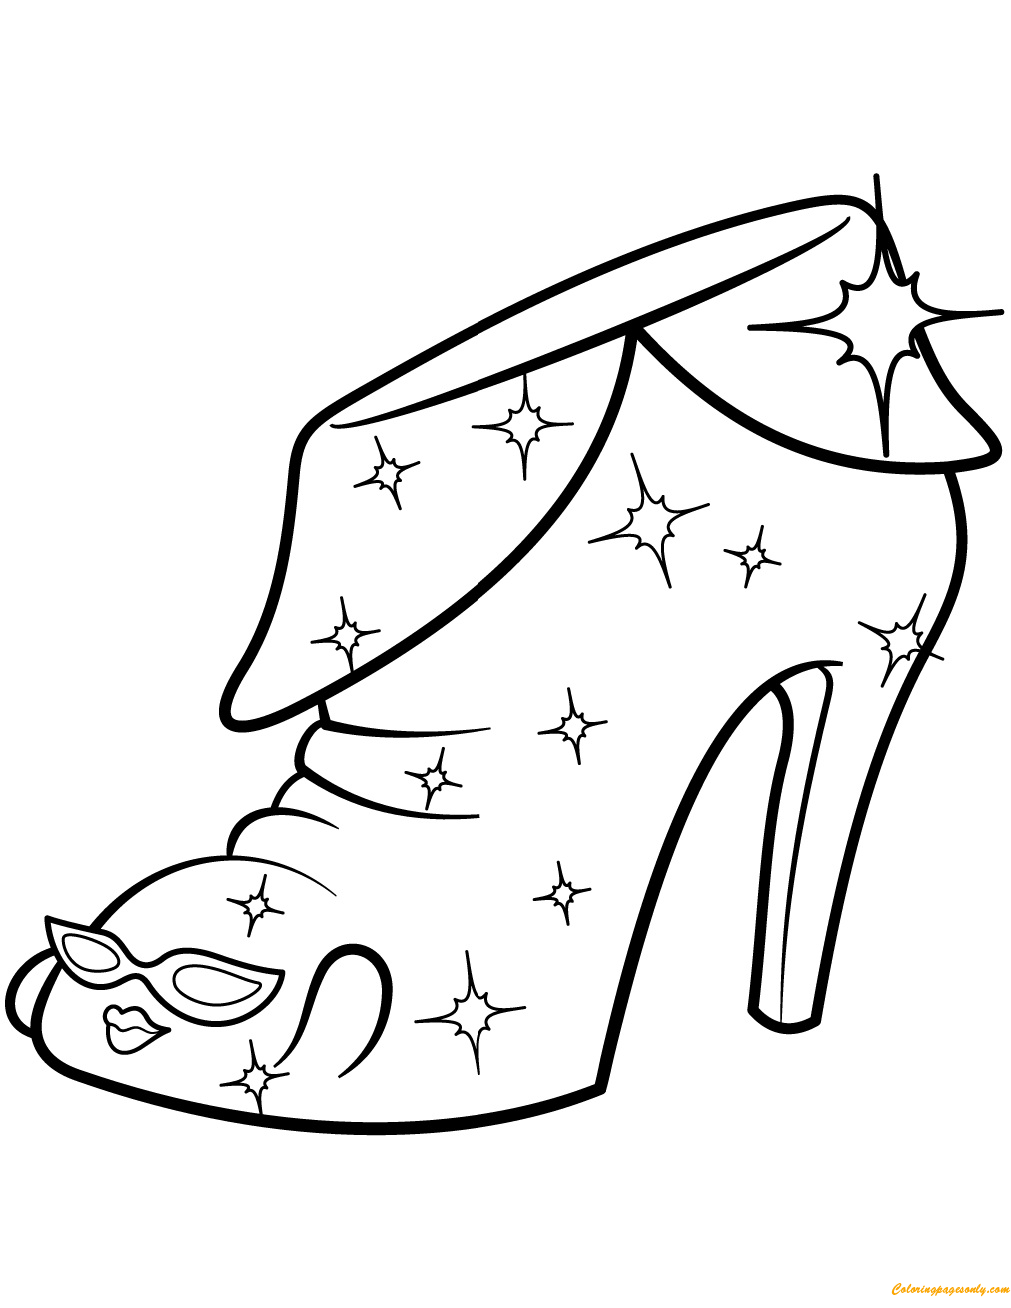 angie ankle boot shopkin season 2 coloring page free